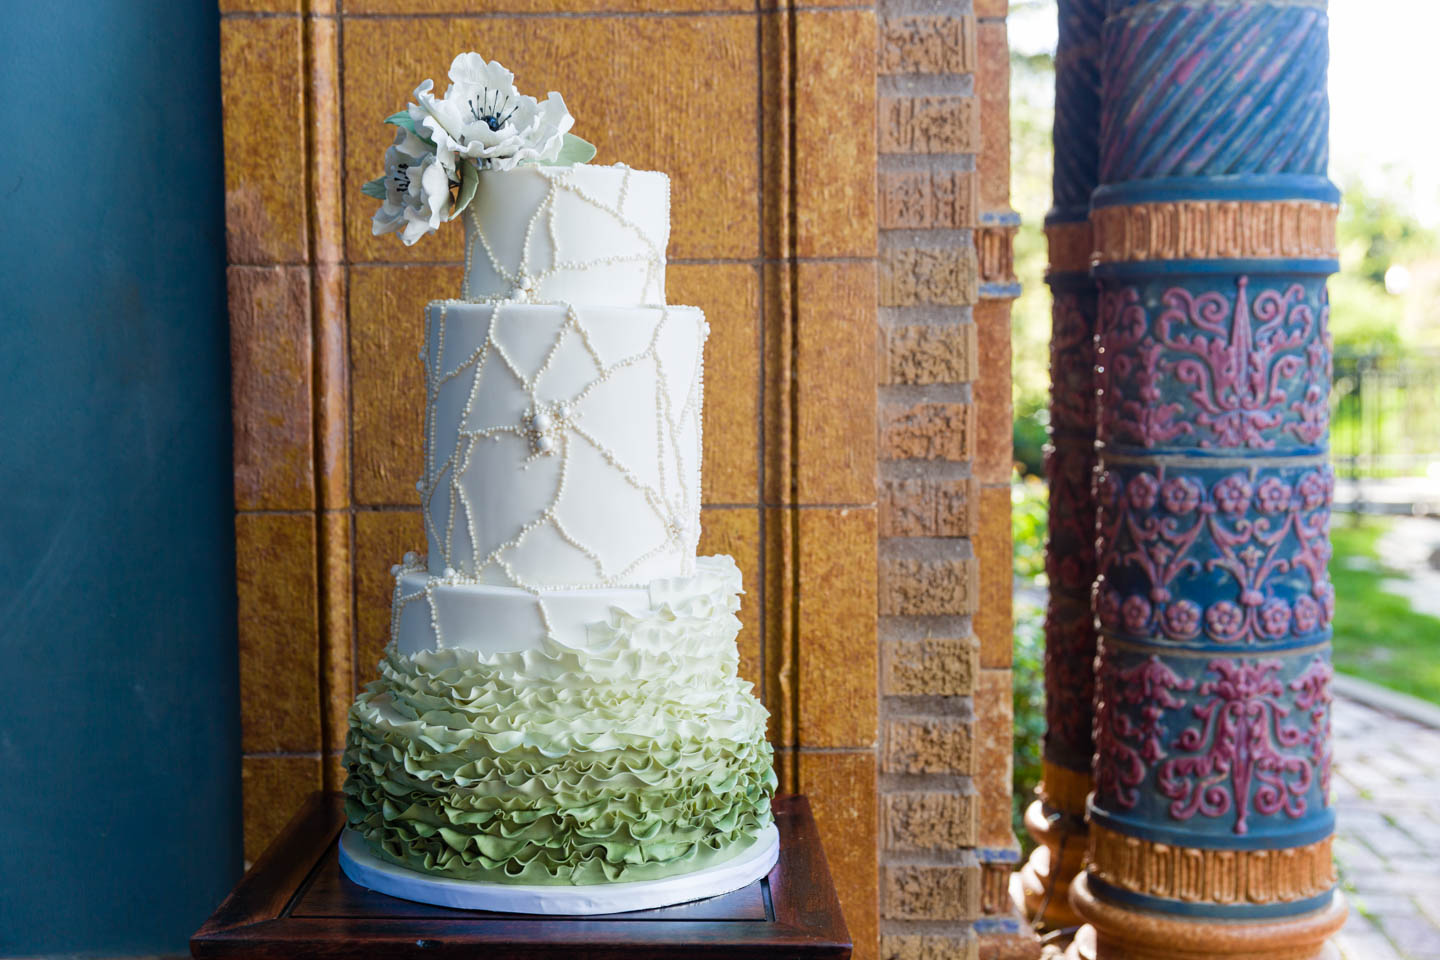 4-layer wedding cake